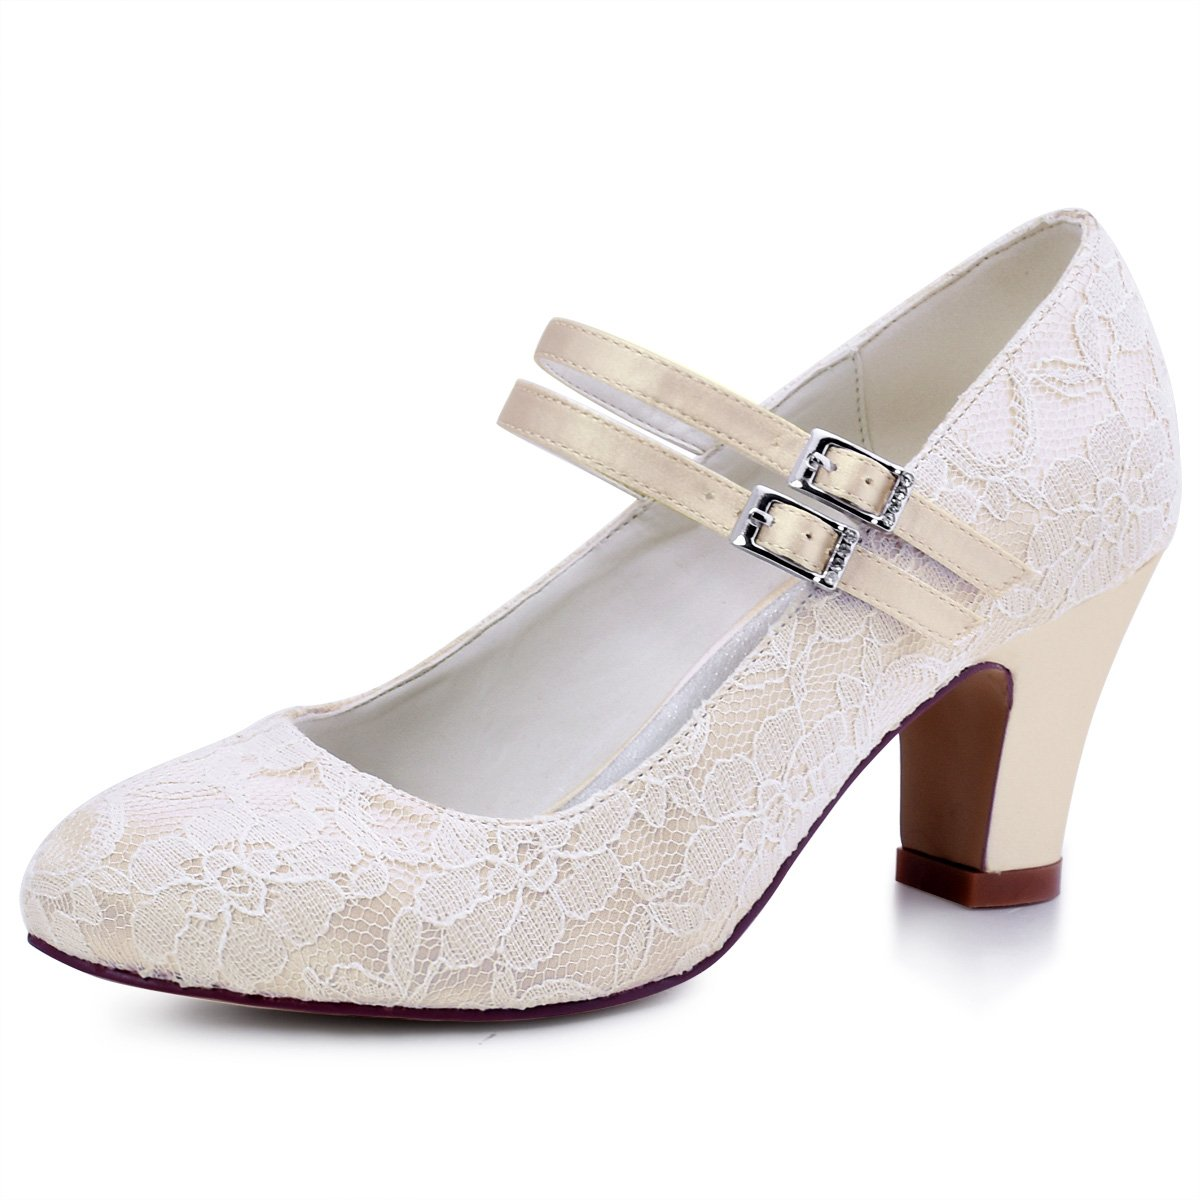 77ce9f210f37 Classic lace mary jane heels pumps wedding Shoes for bride. Perfect bridal  shoes work fine for your wedding. Delicate and comfortable high heels ...